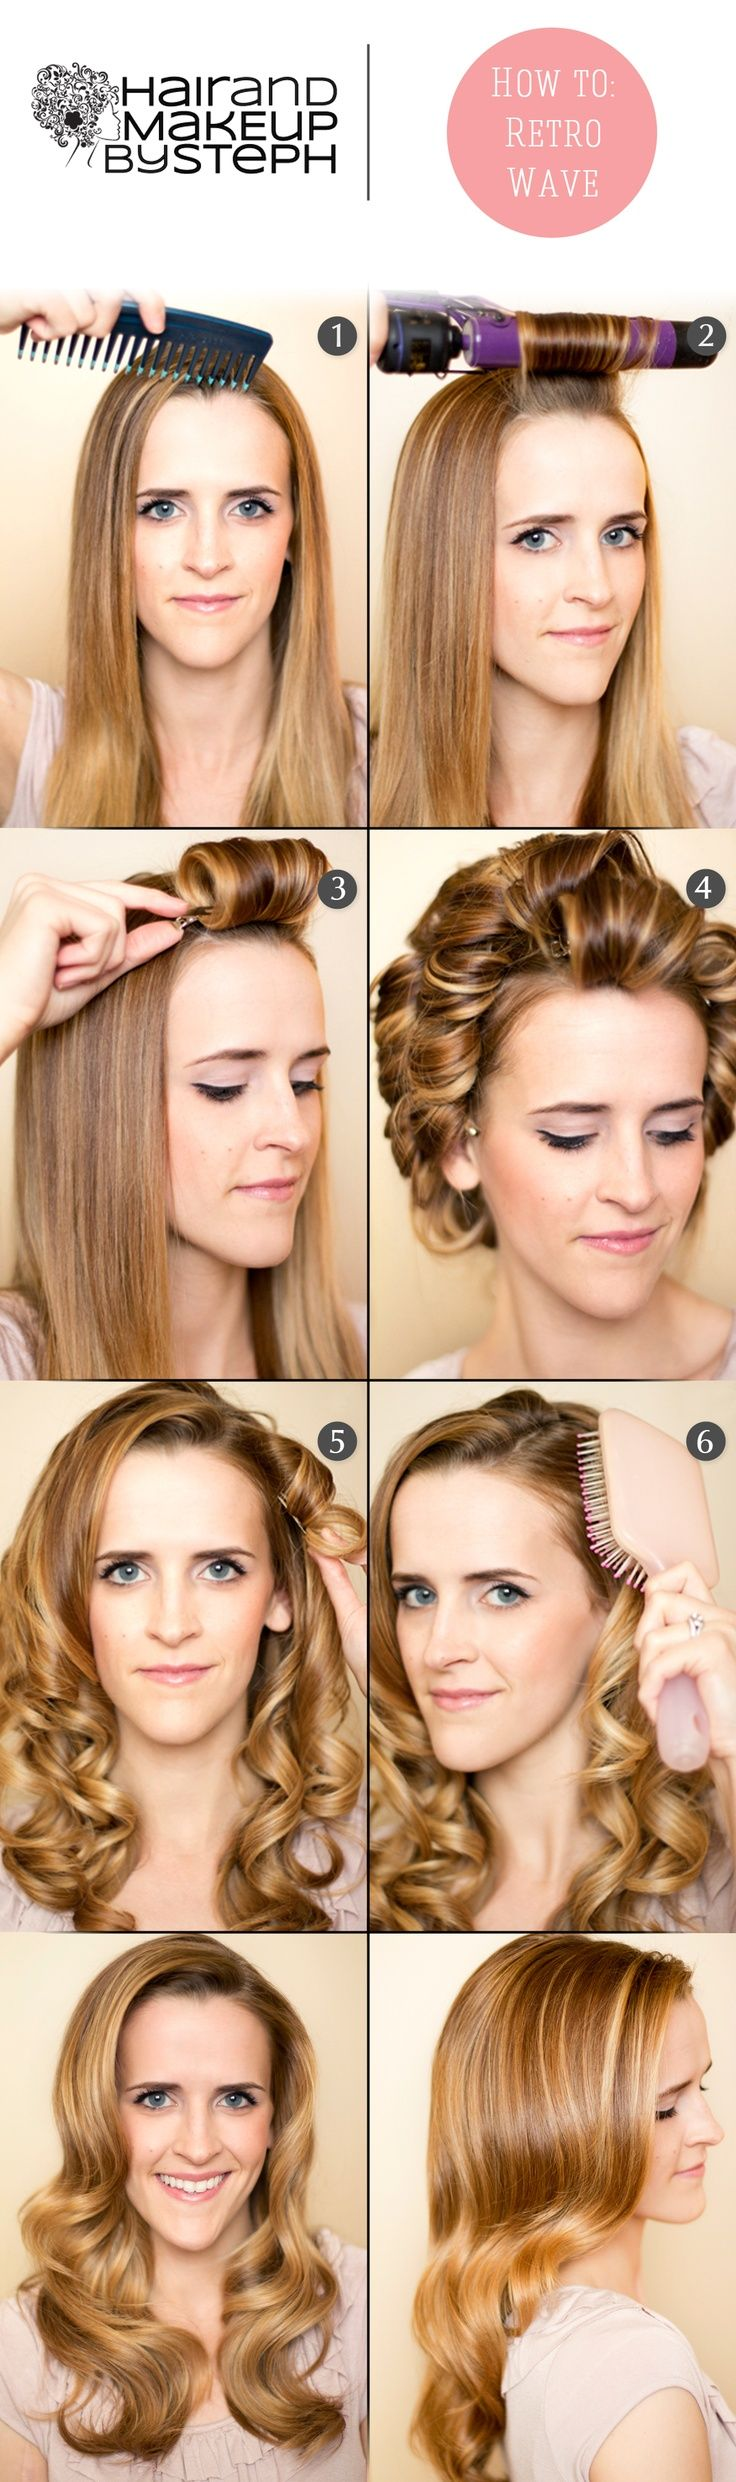 25 beautiful wavy hairstyles tutorial ideas on pinterest wavy 20 stylish retro wavy hairstyle tutorials and hair looks urmus Gallery